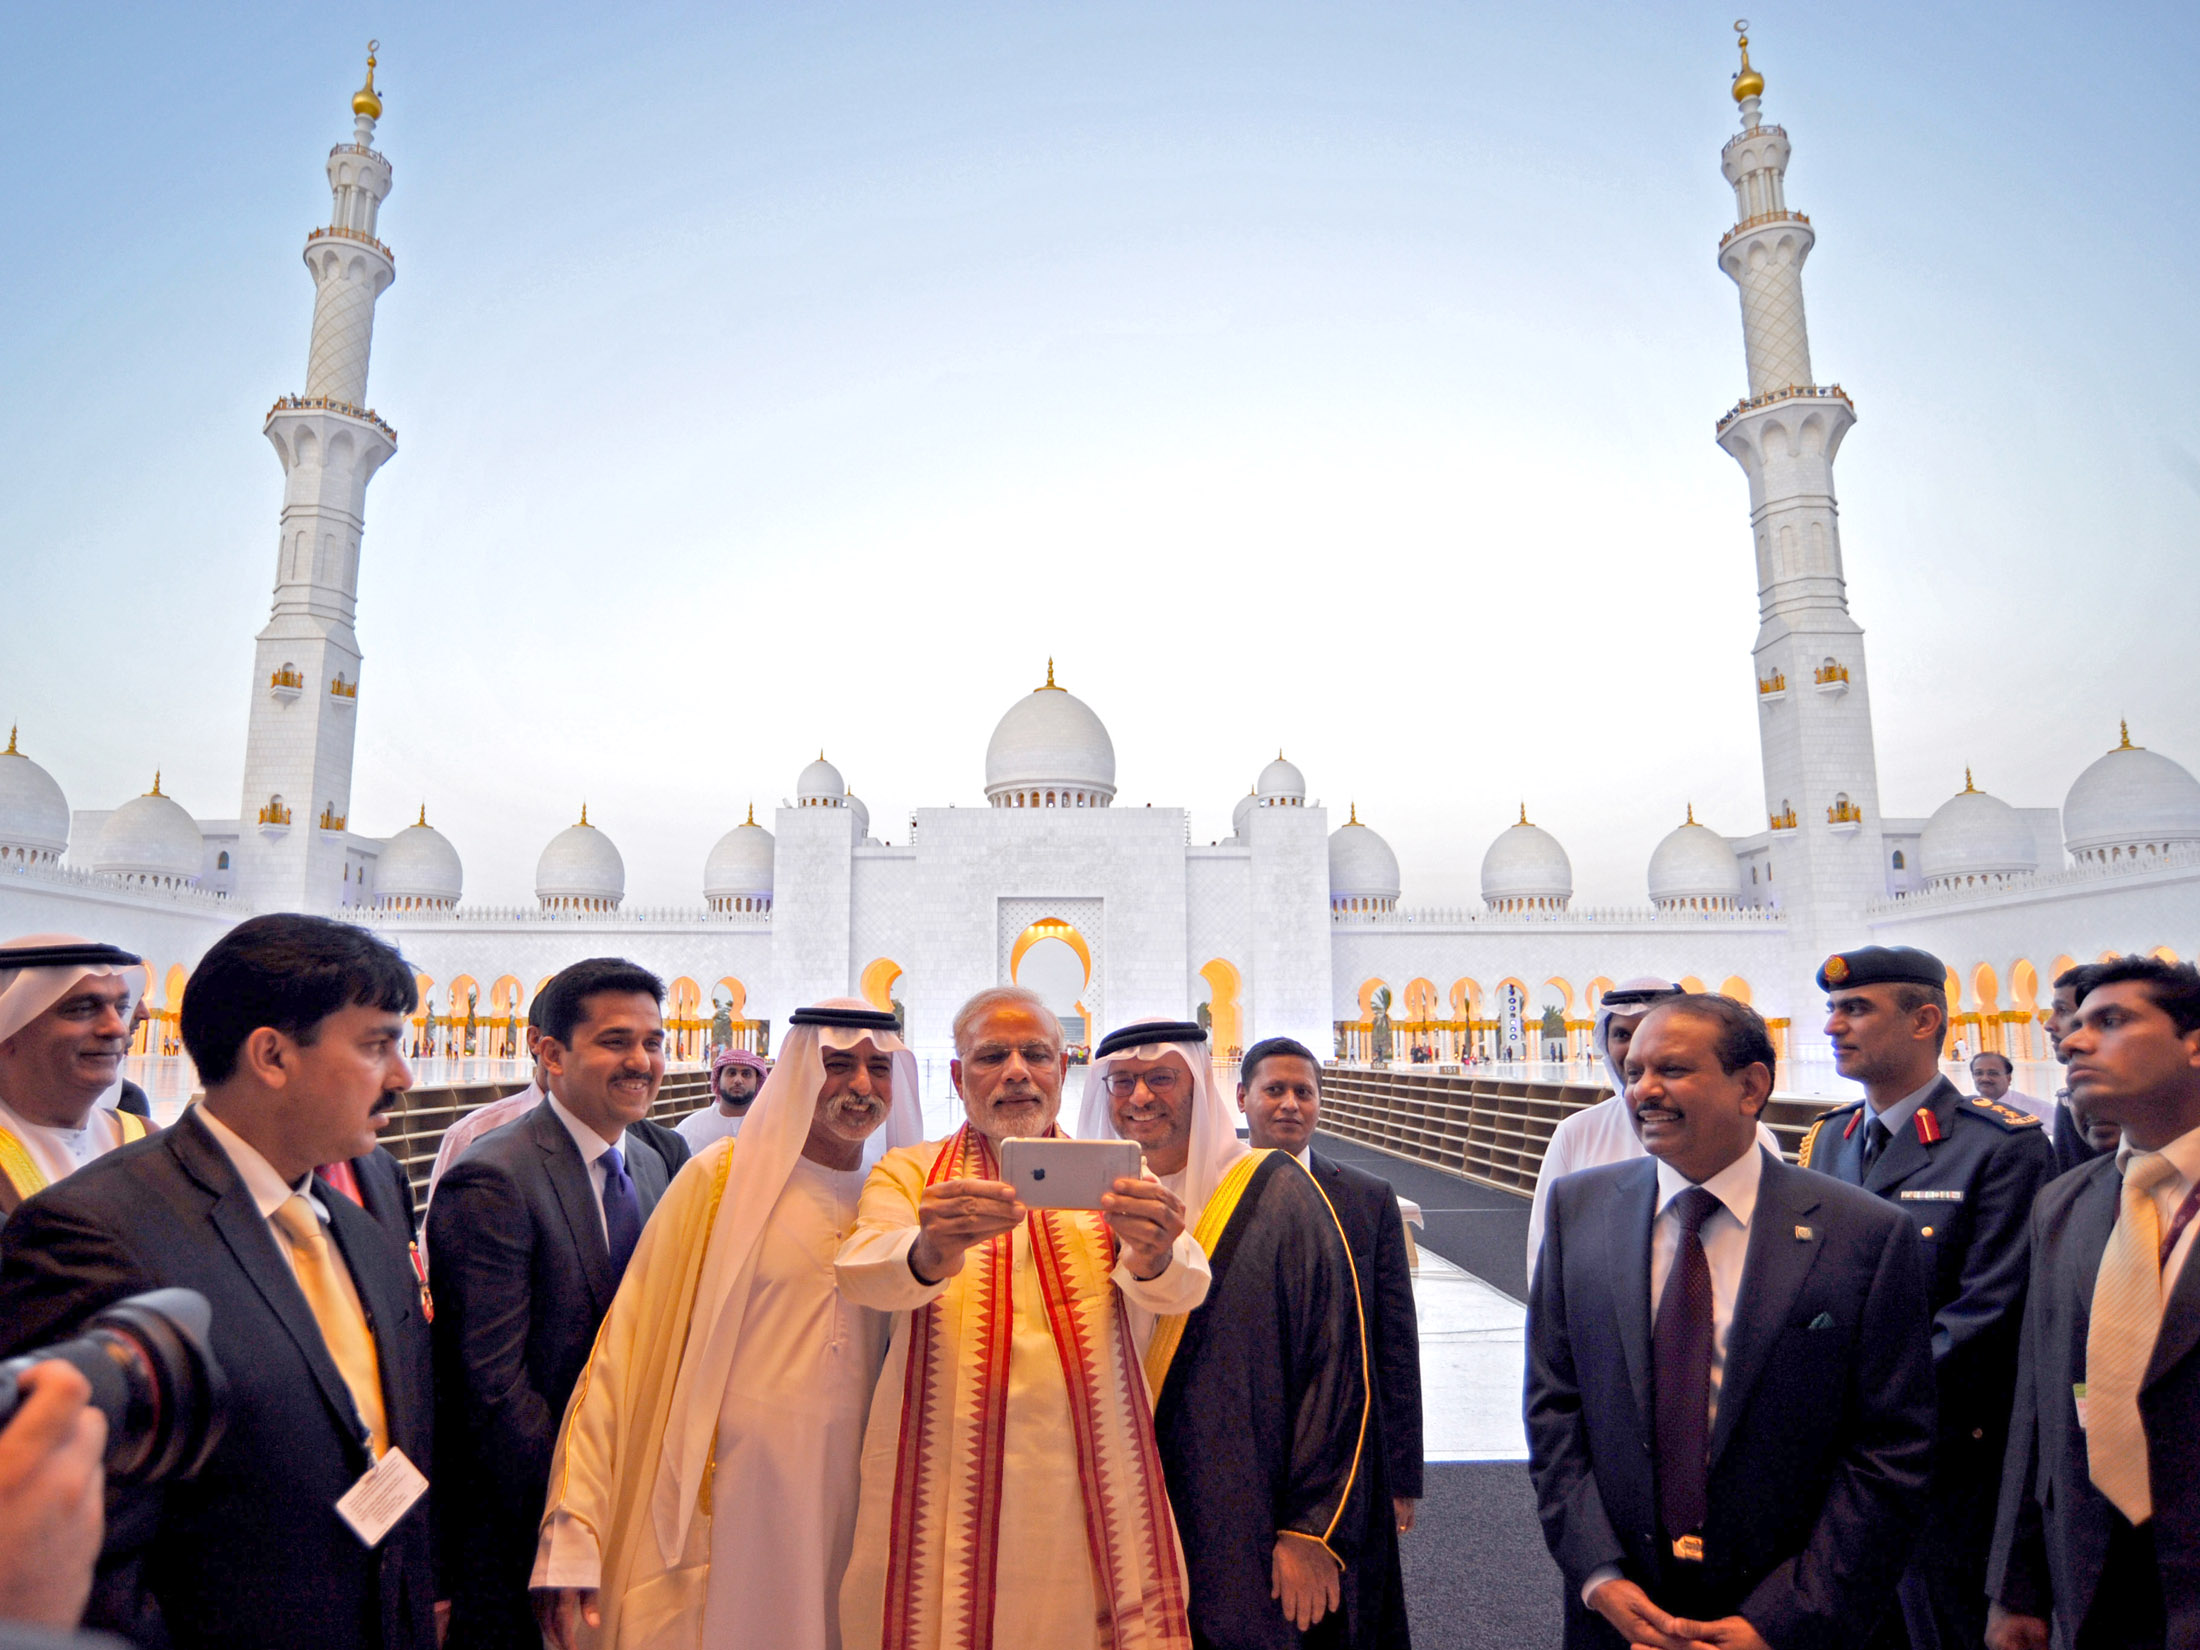 Indian Prime Minister Narendra Modi present in a mosque during his visit to UAE in August 2015.